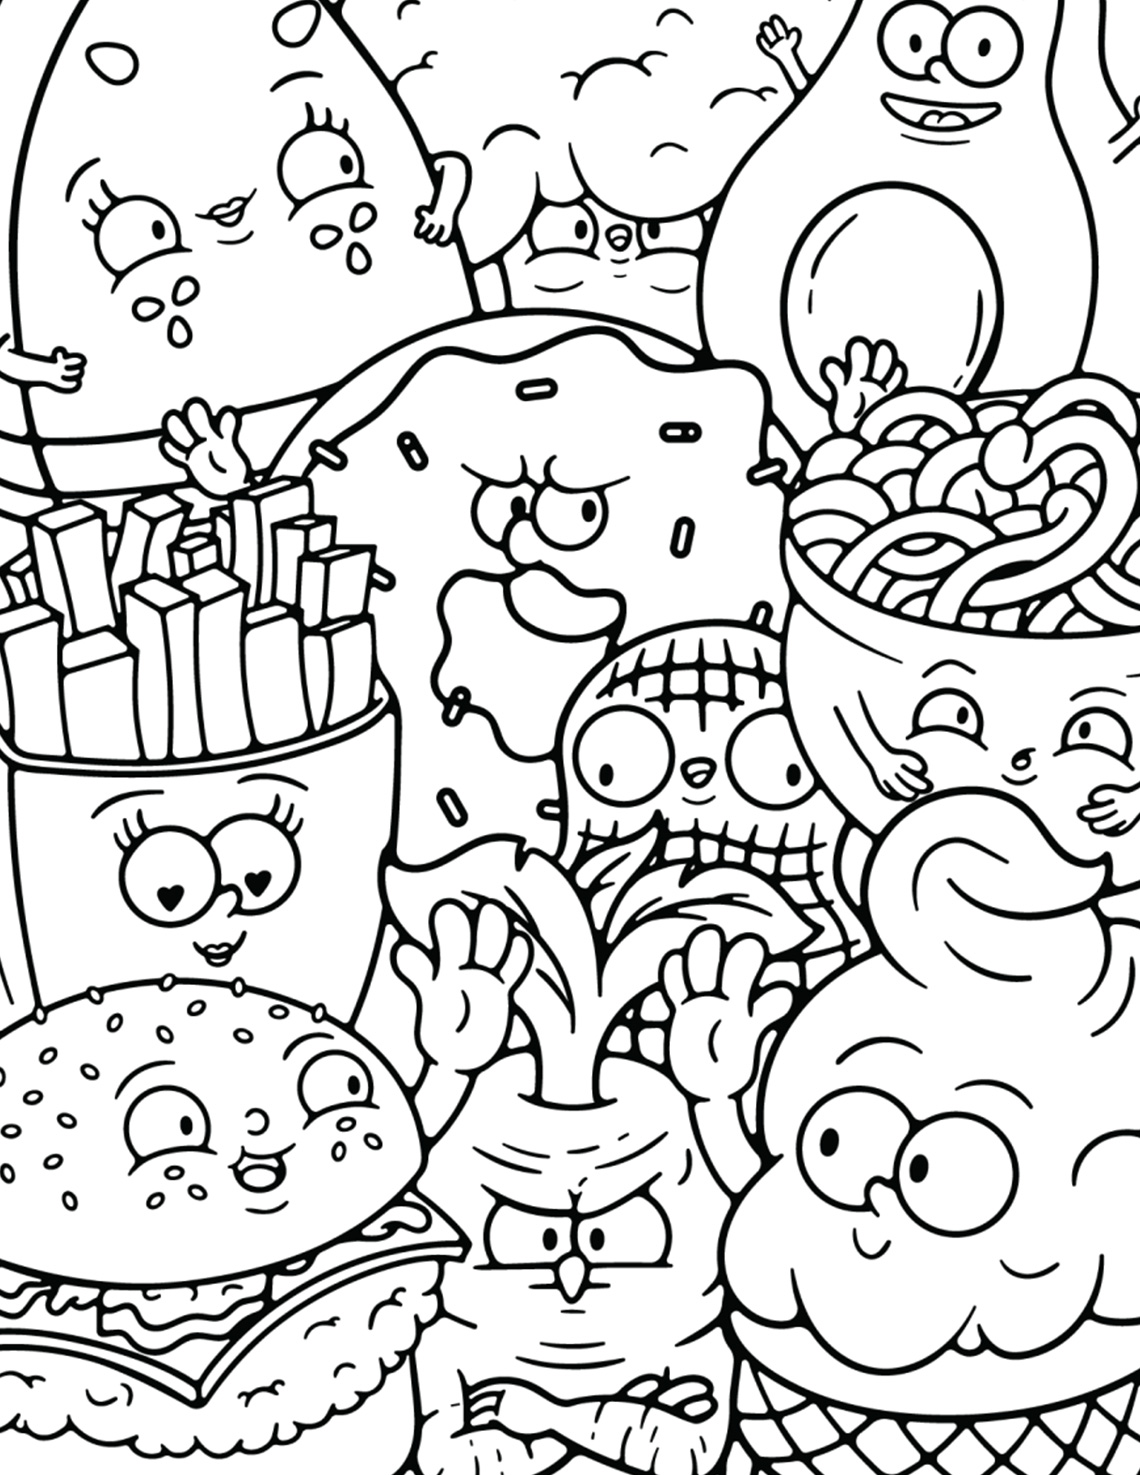 Dude Perfect Coloring Page : perfect, coloring, Colorables, Coloring